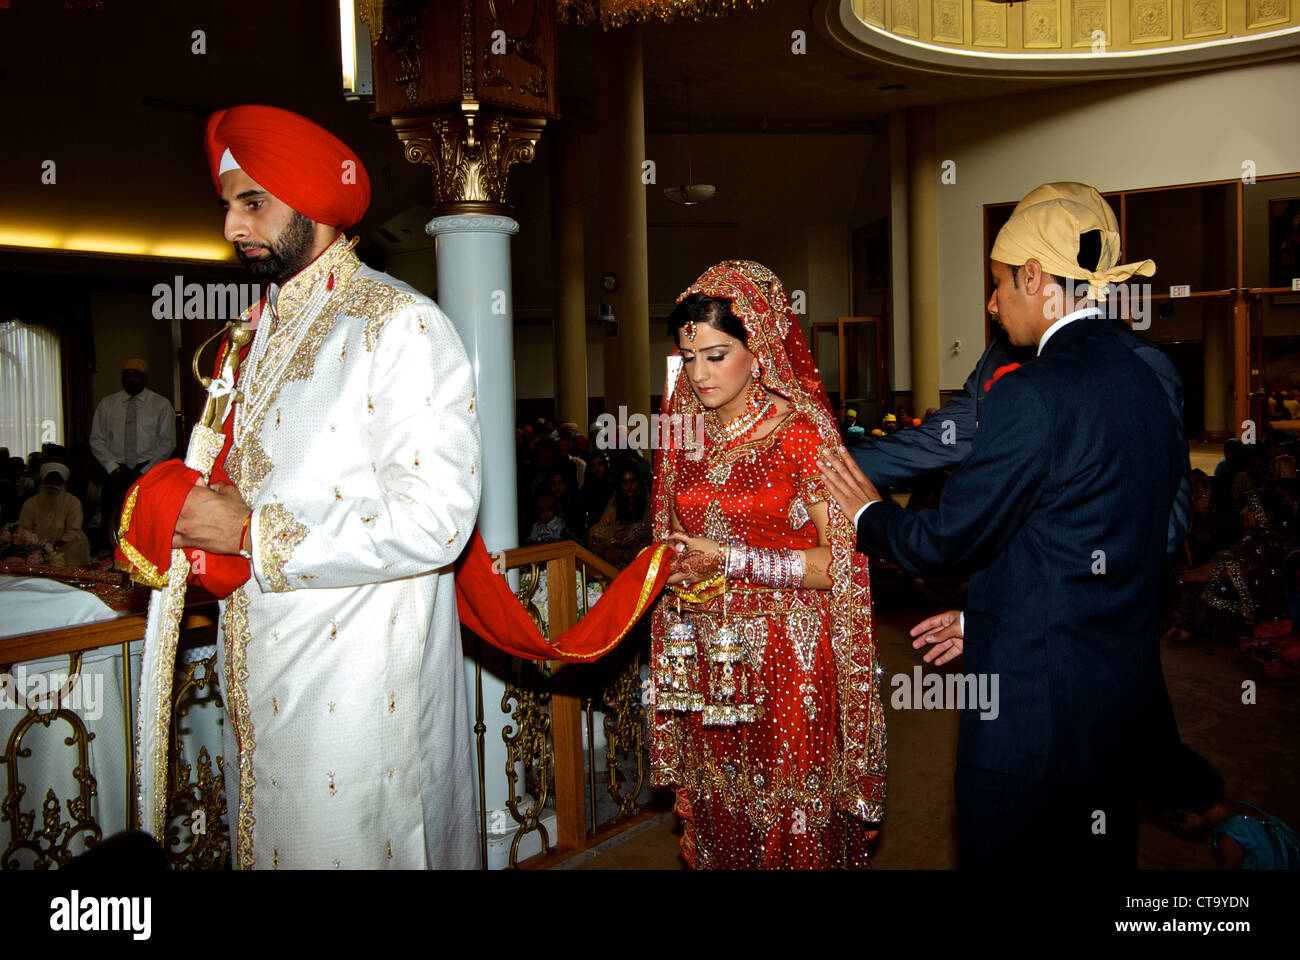 Traditional East Indian Wedding Groom Wearing Bright Red Turban Leading Bride Around Sikh Temple Altar Joined Marriage Scarf